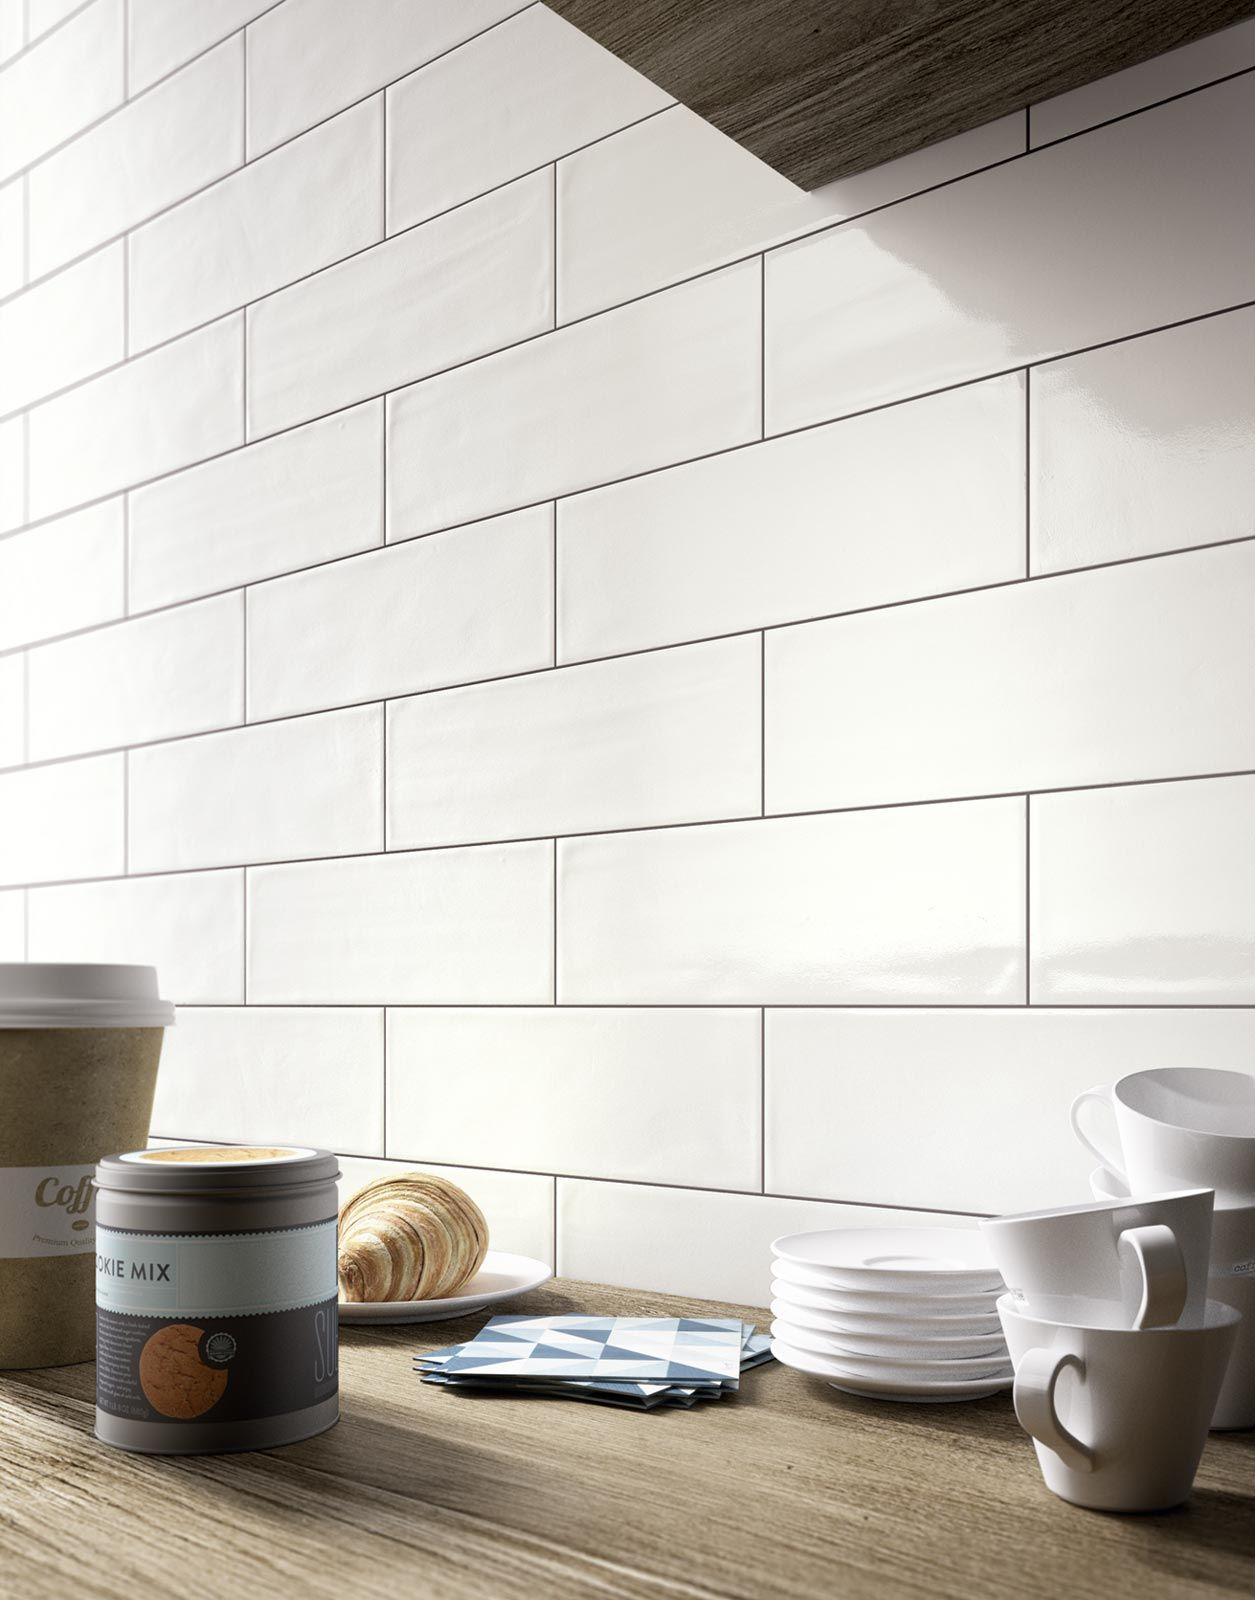 Black And White Kitchen Wall Tiles Brick Glossy Ceramic Wall Coverings For Kitchens And